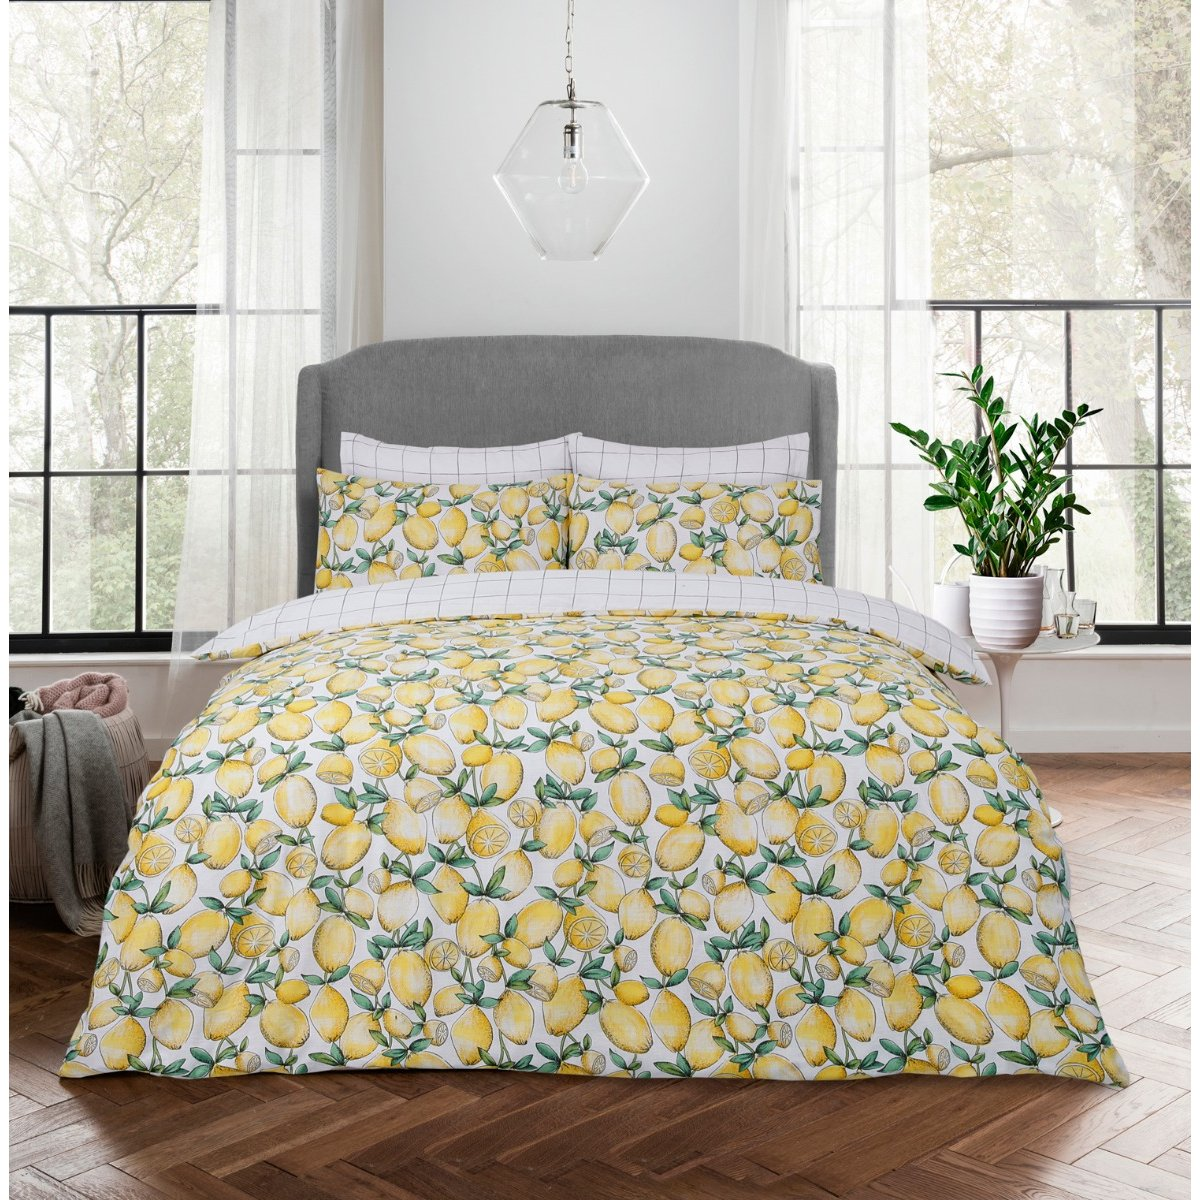 Lemons Yellow Bedding - Reversible Duvet Cover and Pillowcase Set